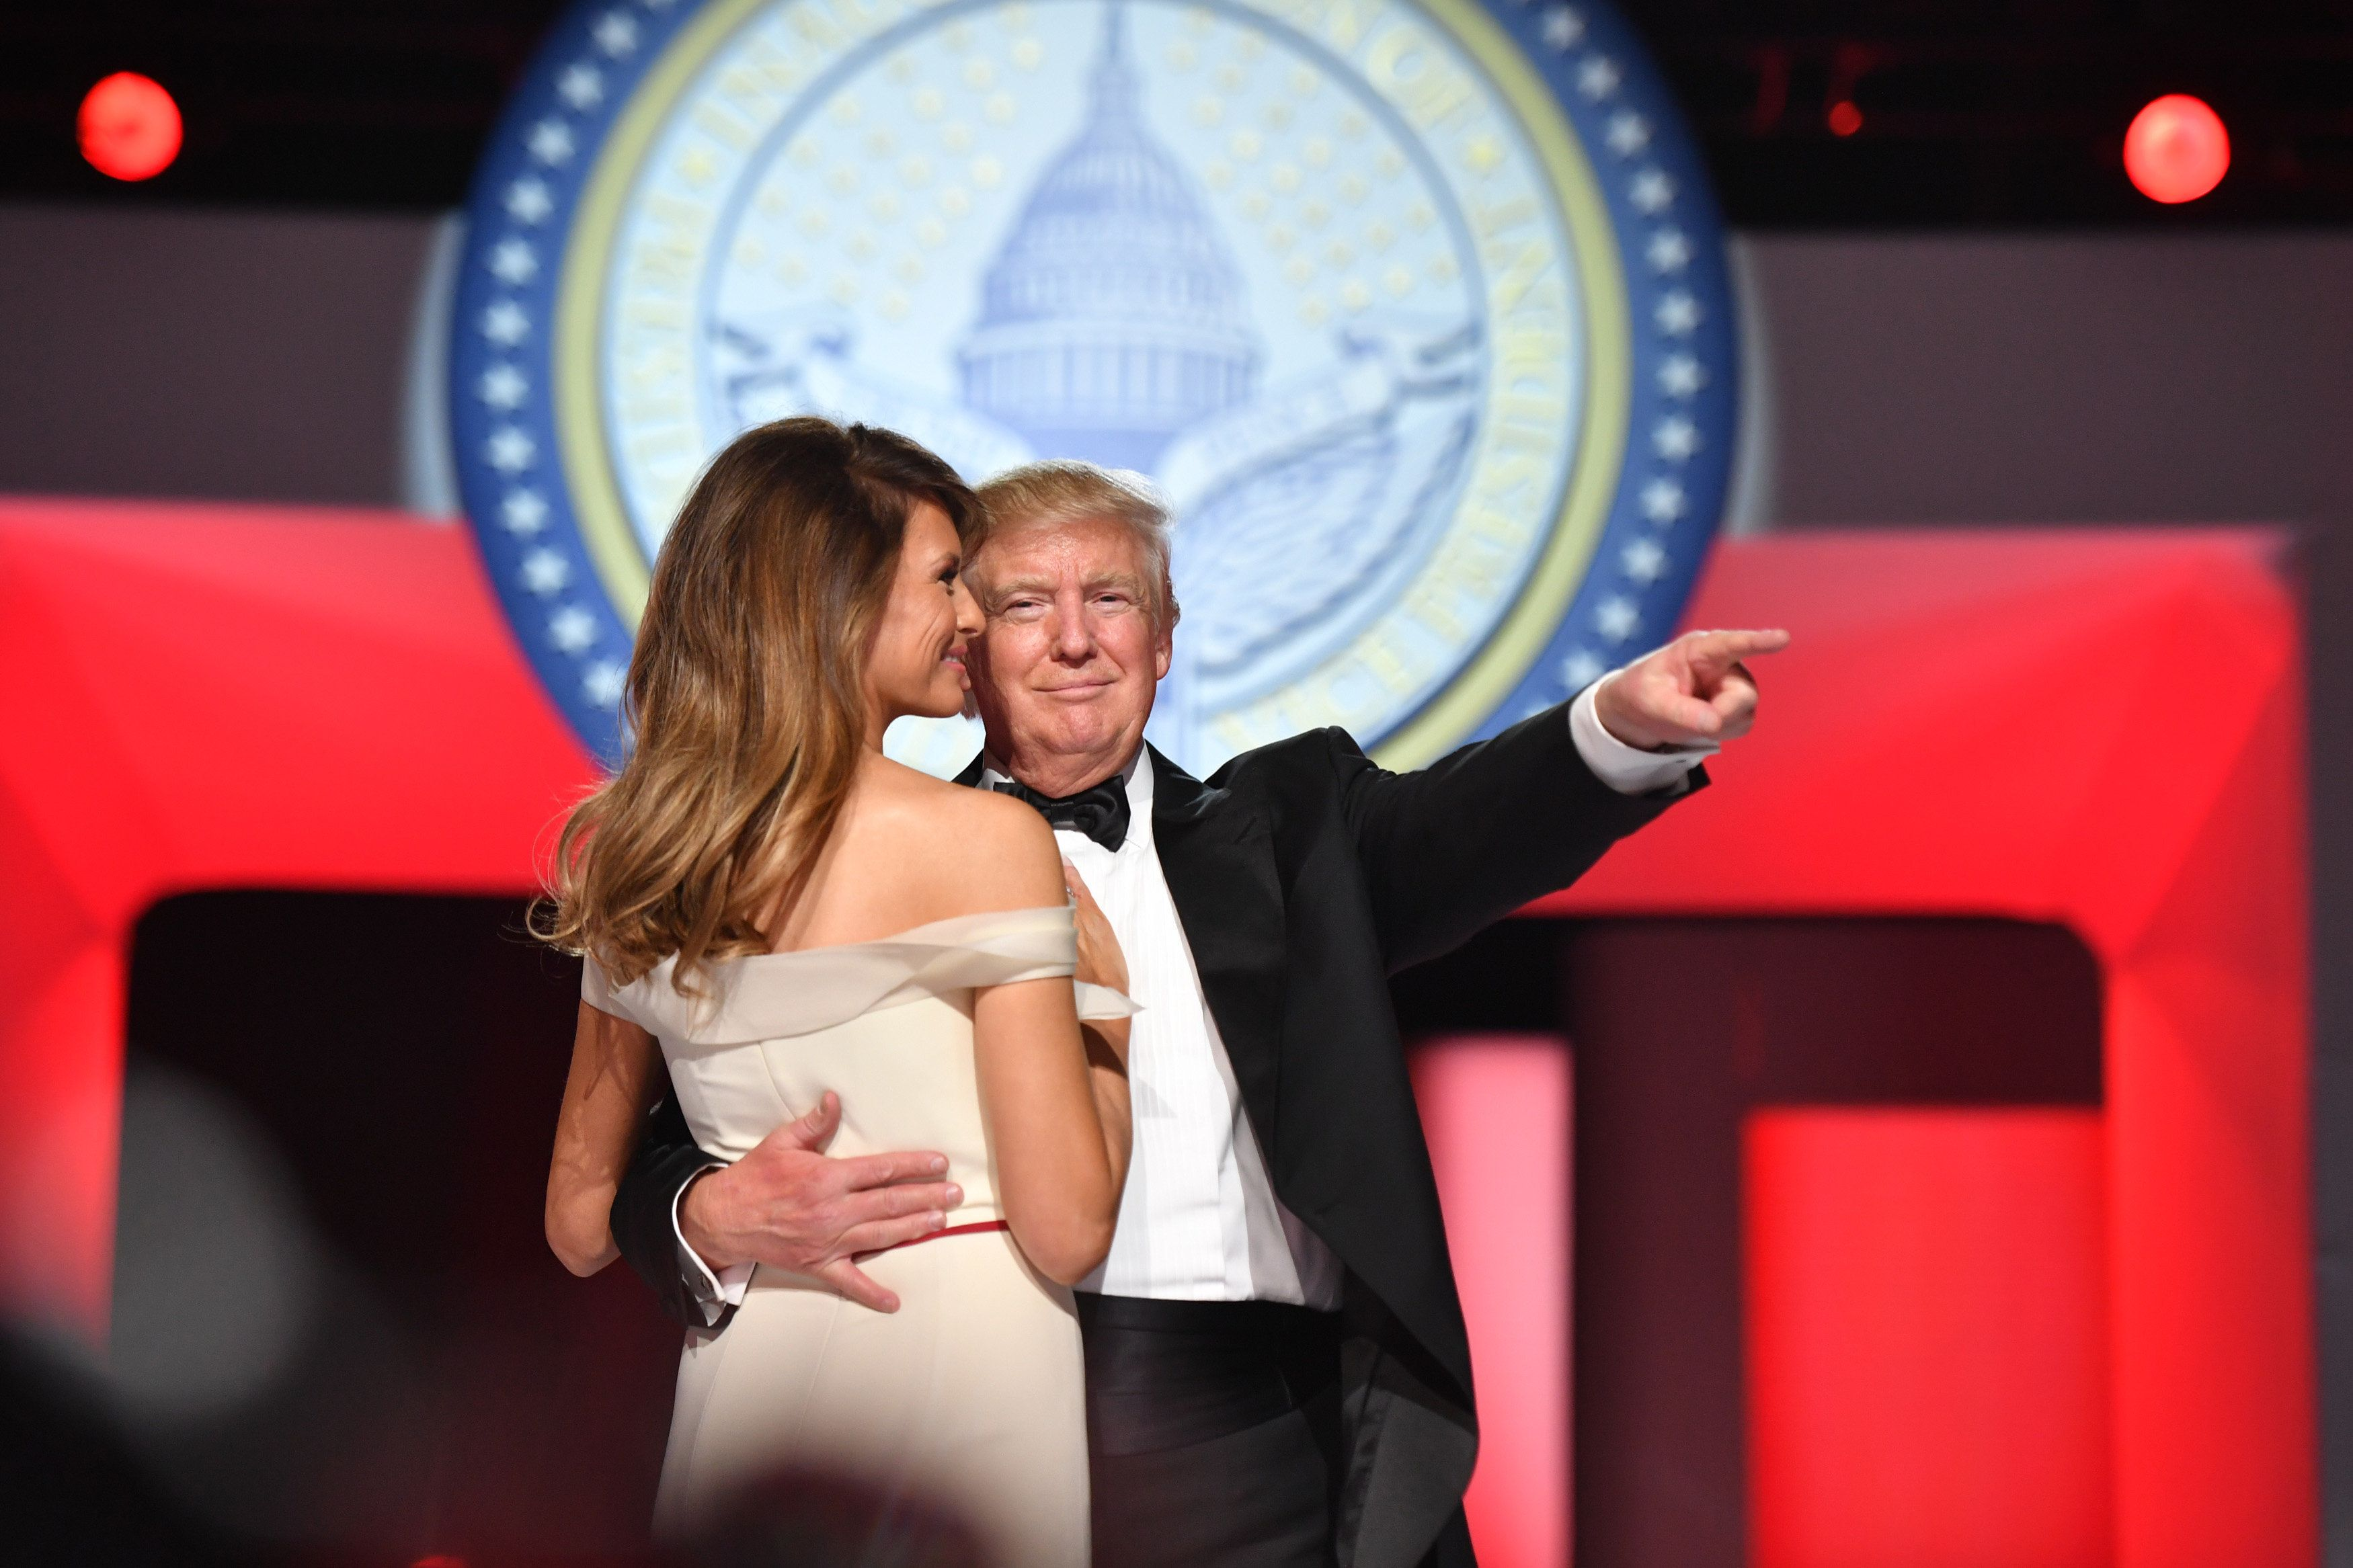 FILE: U.S. President Donald Trump, right, gestures as he dances with First Lady Melania Trump during the Freedom Ball in Washington, D.C., on Friday, Jan. 20, 2017. The one year anniversary of U.S. President Donald Trump's inauguration falls on Saturday, January 20, 2018. Our editors select the best archive images looking back over Trumps first year in office. Photographer: Kevin Dietsch/Pool via Bloomberg